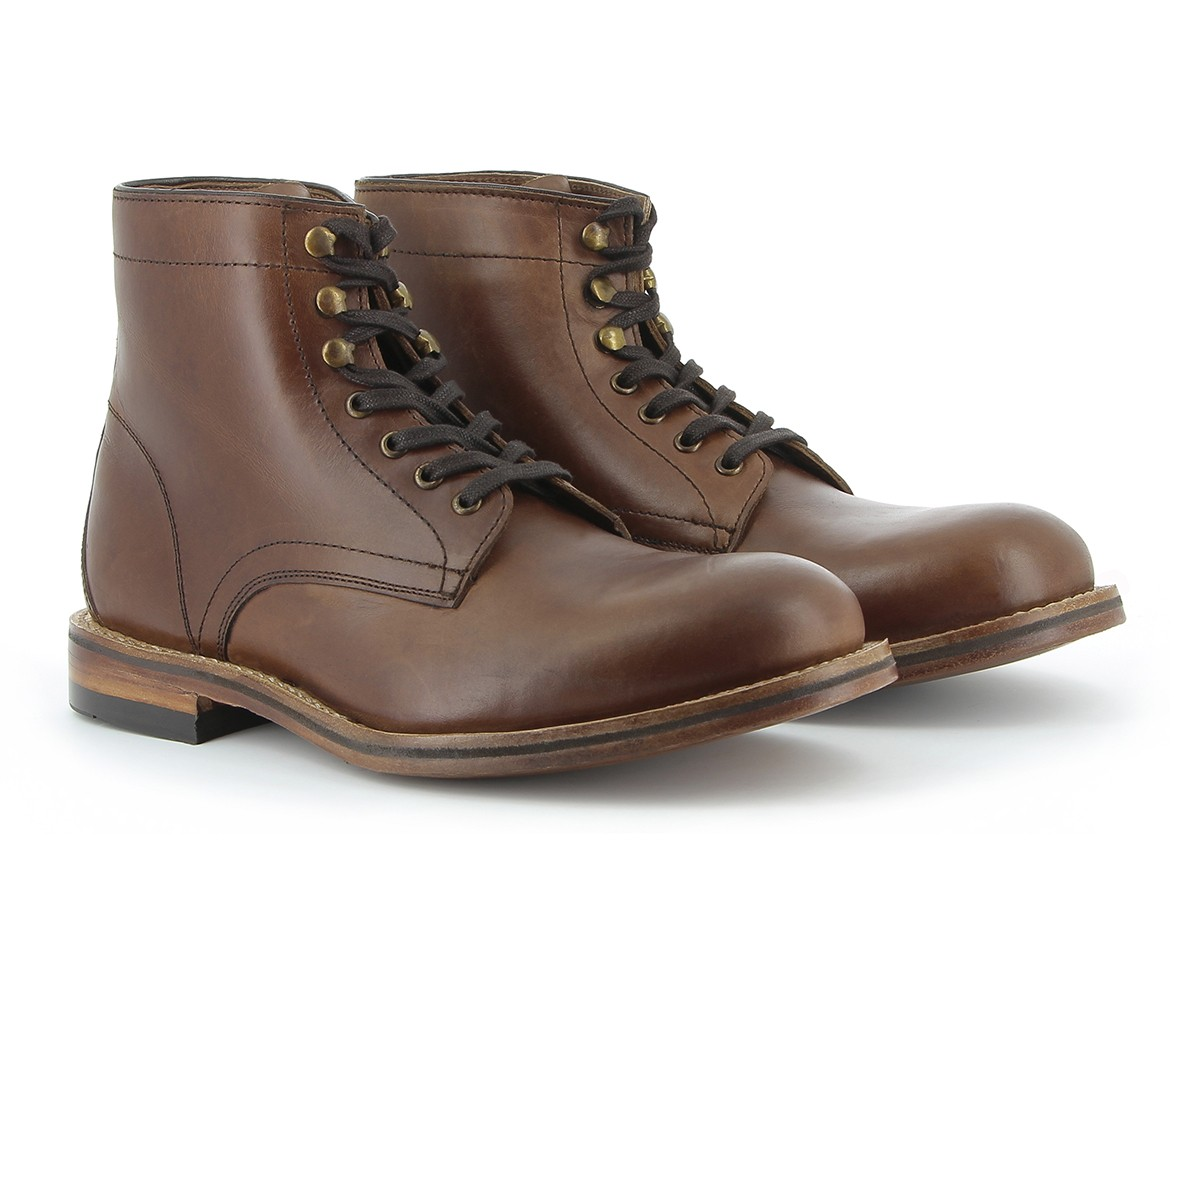 G.H. Bass & Co. Monogram Lace Pull Up Boot Dark Brown Leather